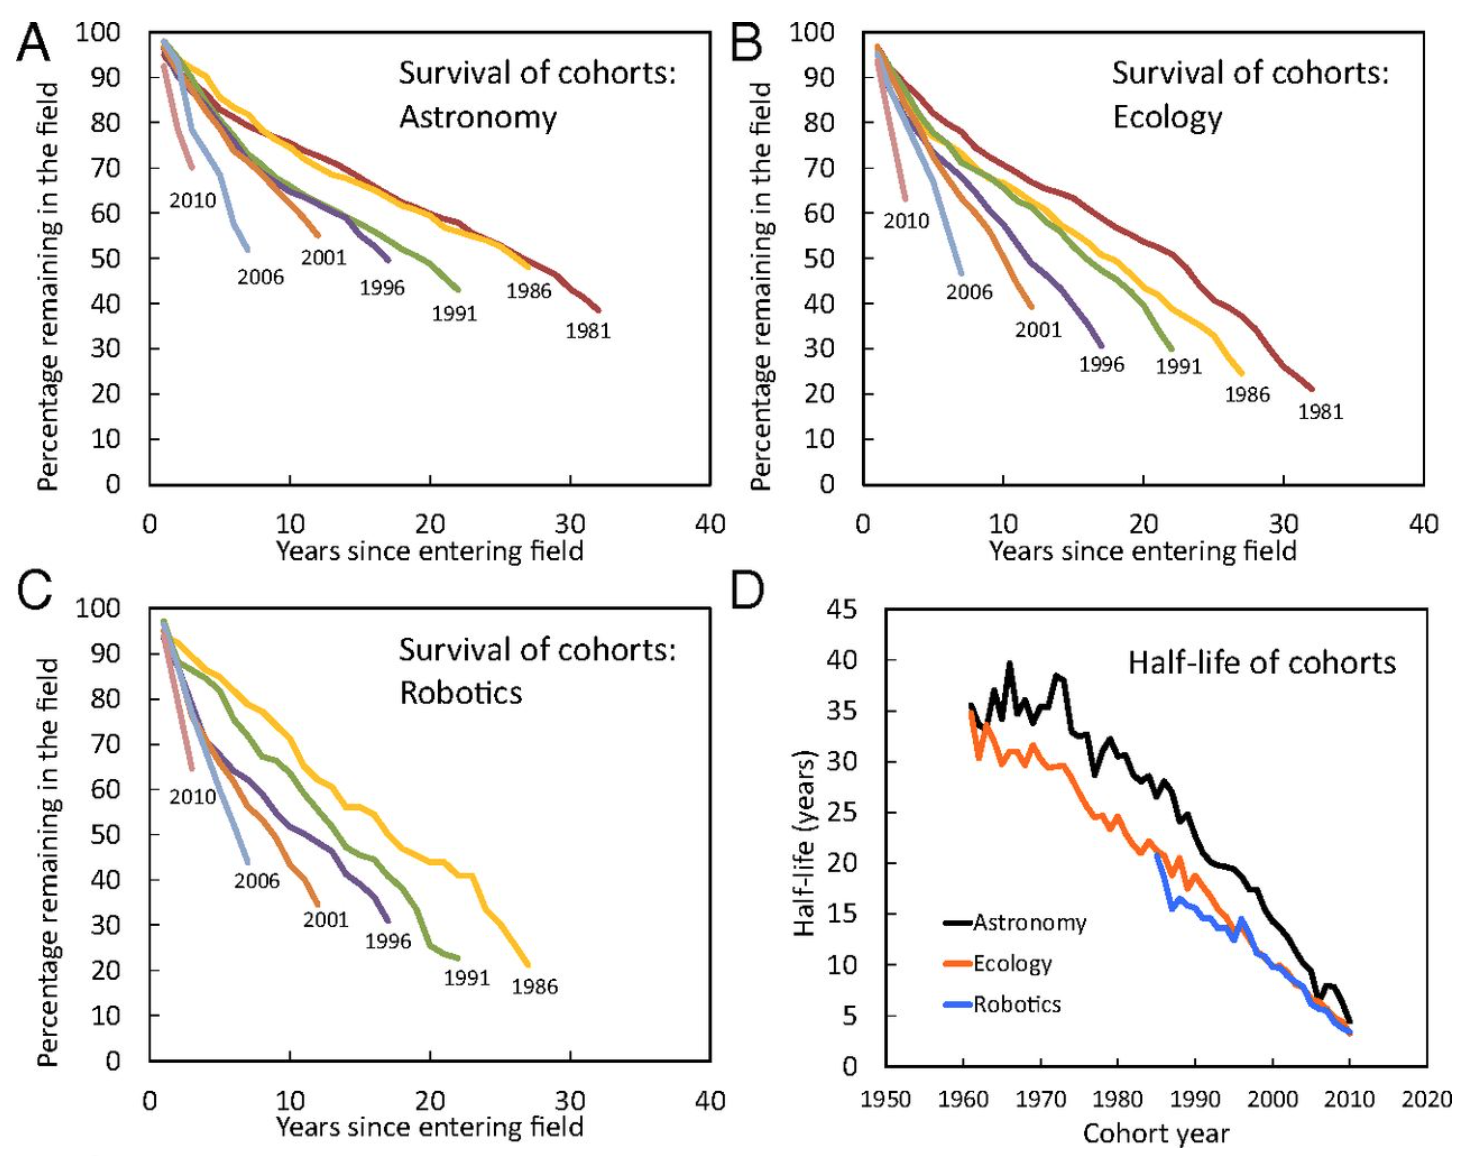 Survival functions of select cohorts in three fields (A–C) and the half-life (time needed for half of the cohort to abandon the field) of all cohorts from all three fields (D). The decline in survivability over the past half-century has been remarkable.